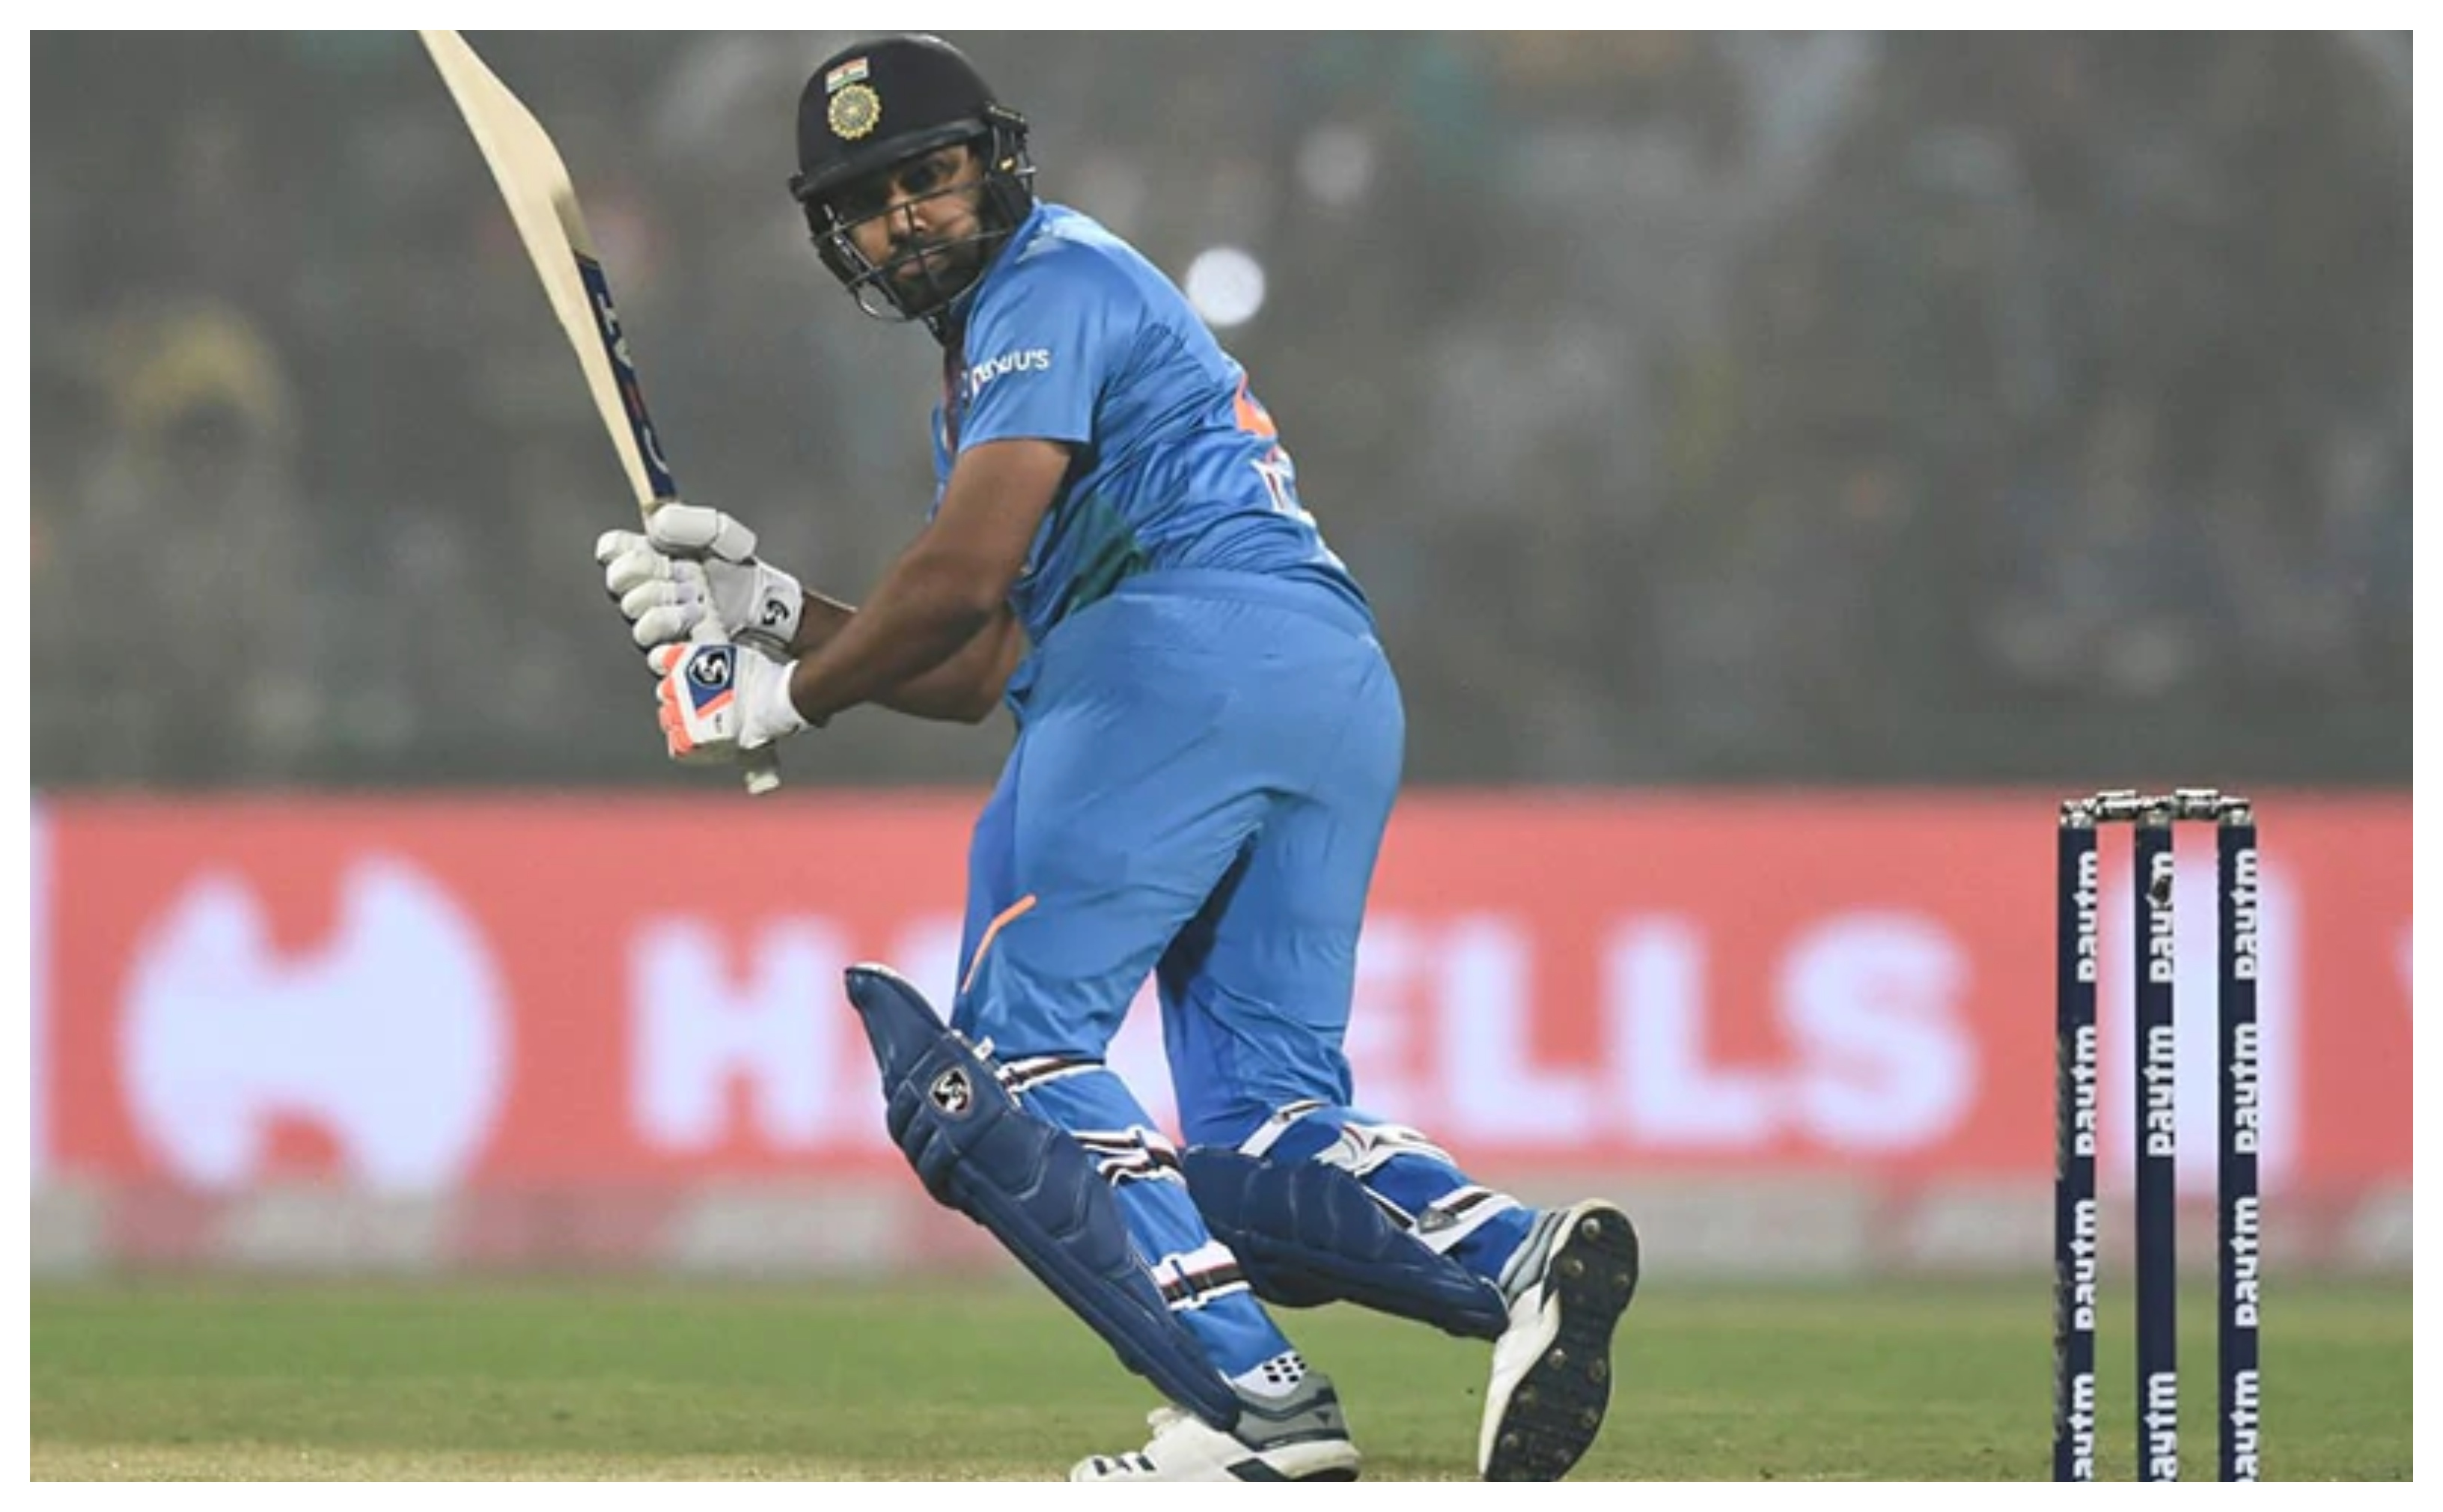 Rohit Sharma scored just 9 in the first T20I against Bangladesh | AFP